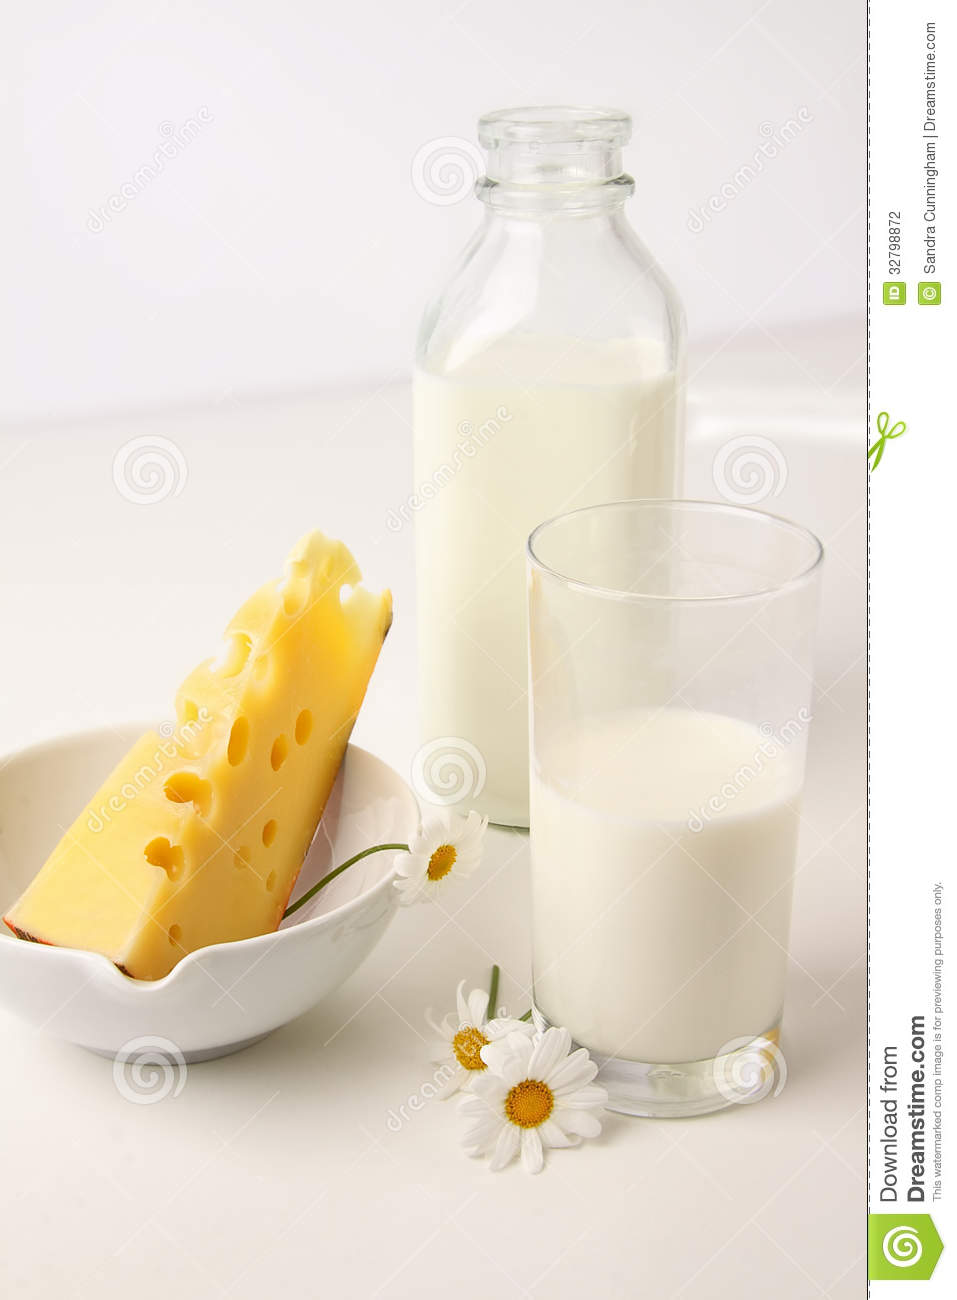 milk products images